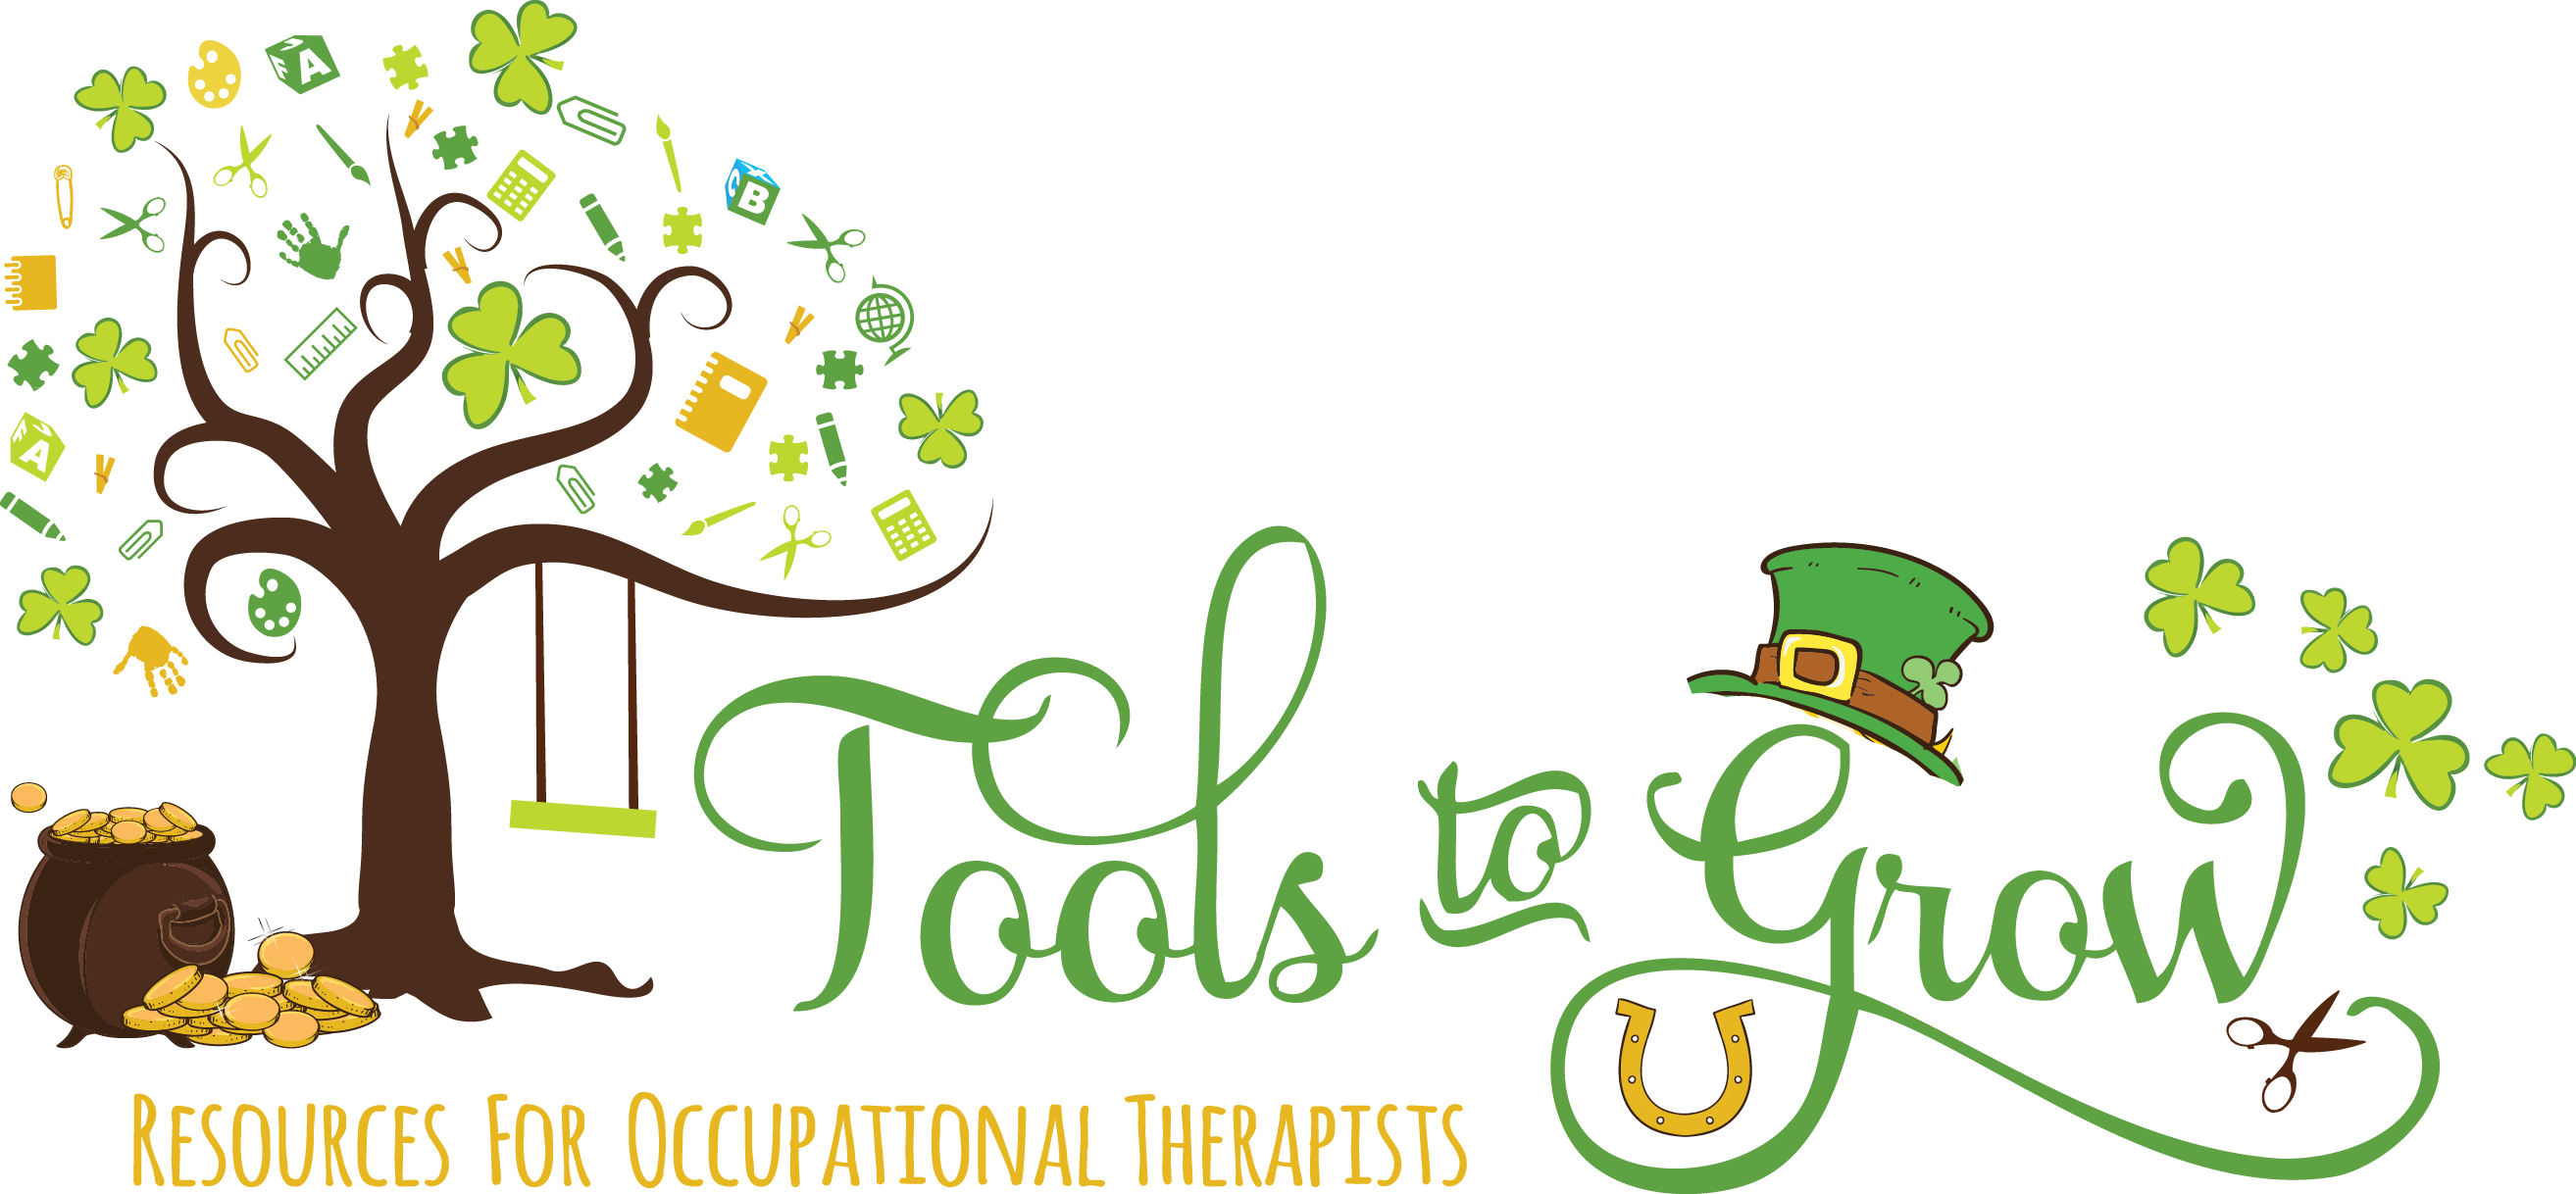 Tools to Grow - St Patrick's Day Resources, Ideas, and Activities